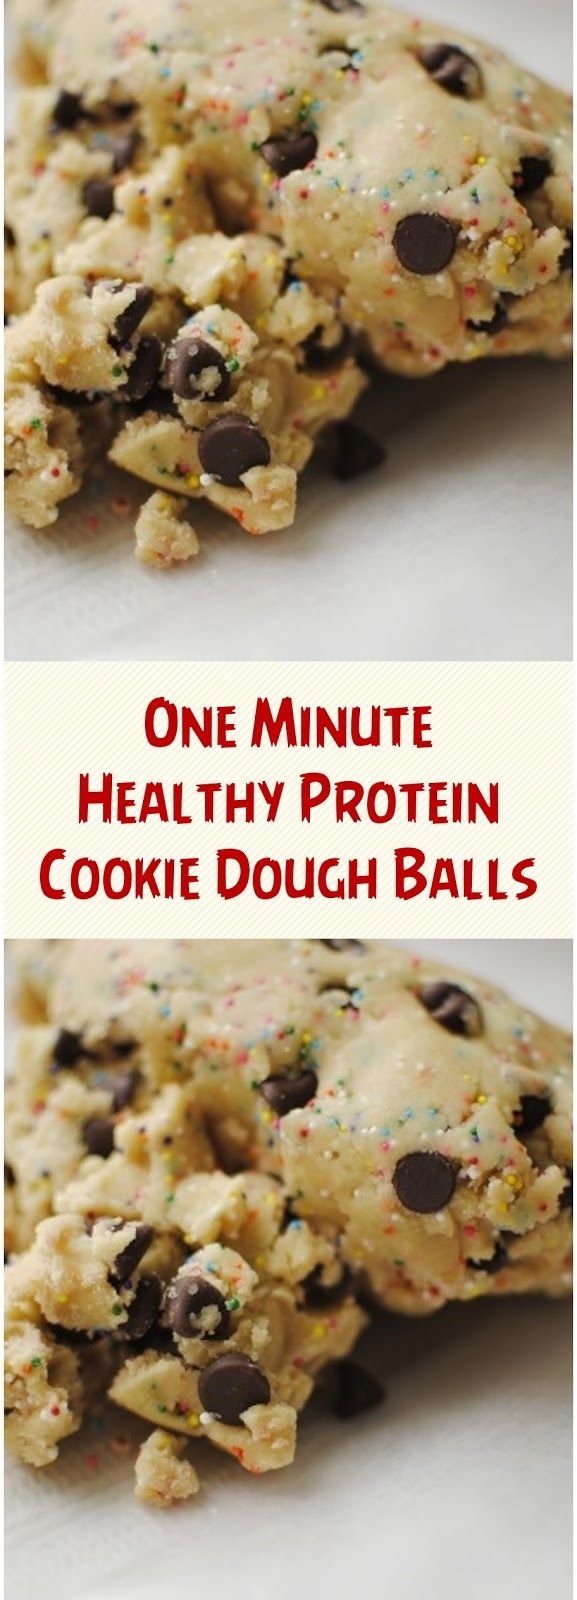 One Minute Healthy Protein Cookie Dough Balls #proteincookies